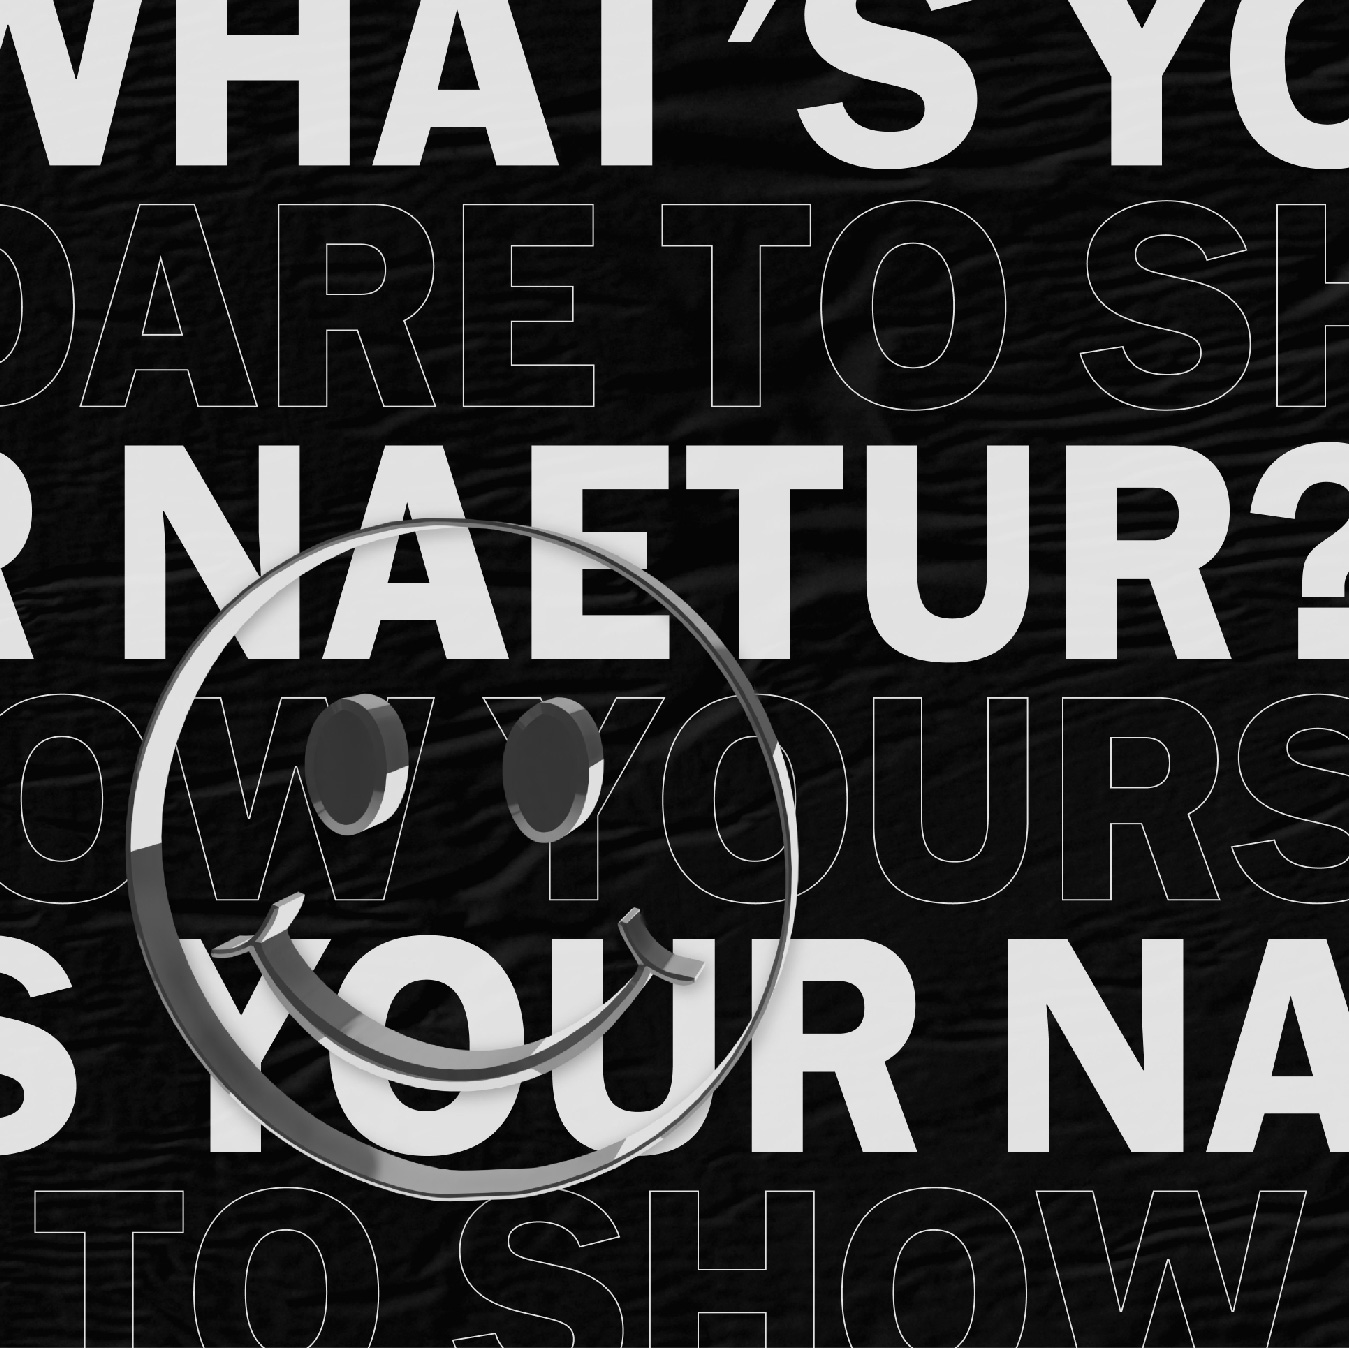 Naetur Concept Development and Art Direction